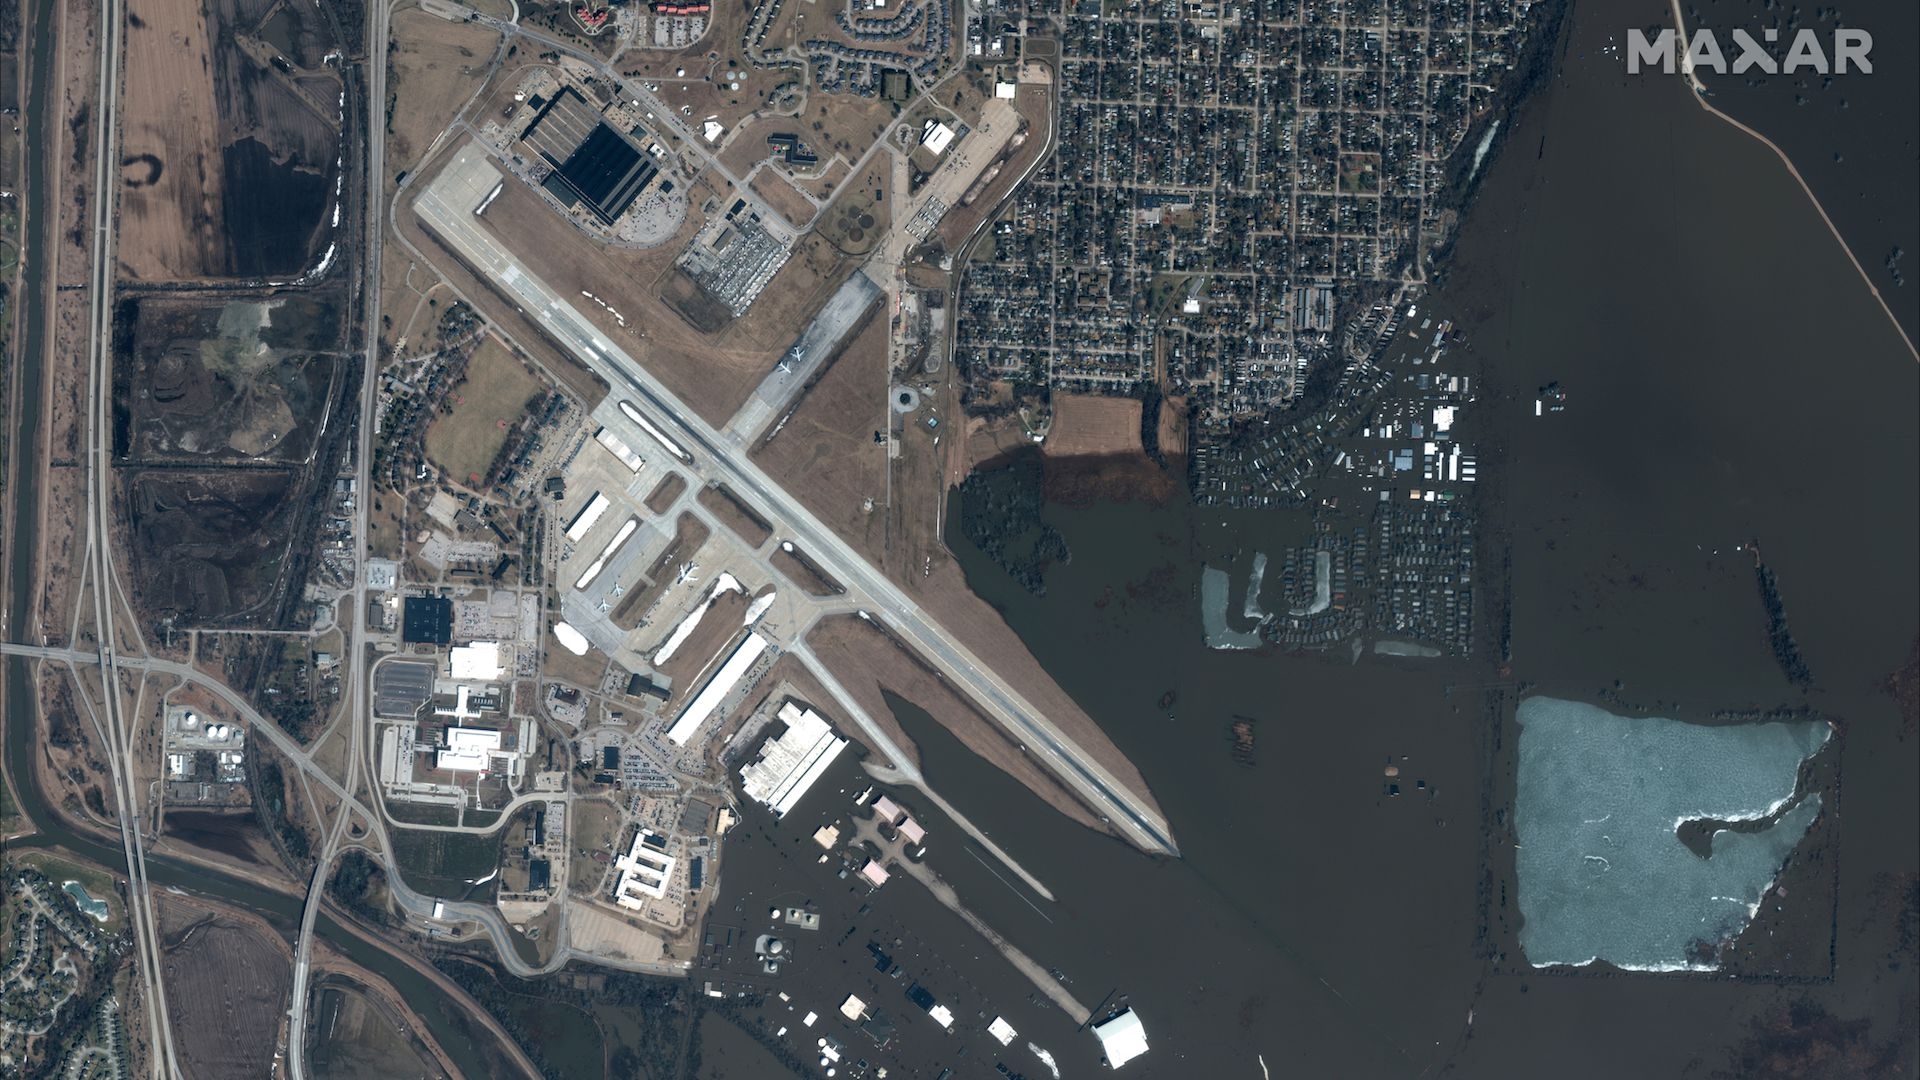 Satellite before and after photos reveal the scope and scale of the floods in Plains states